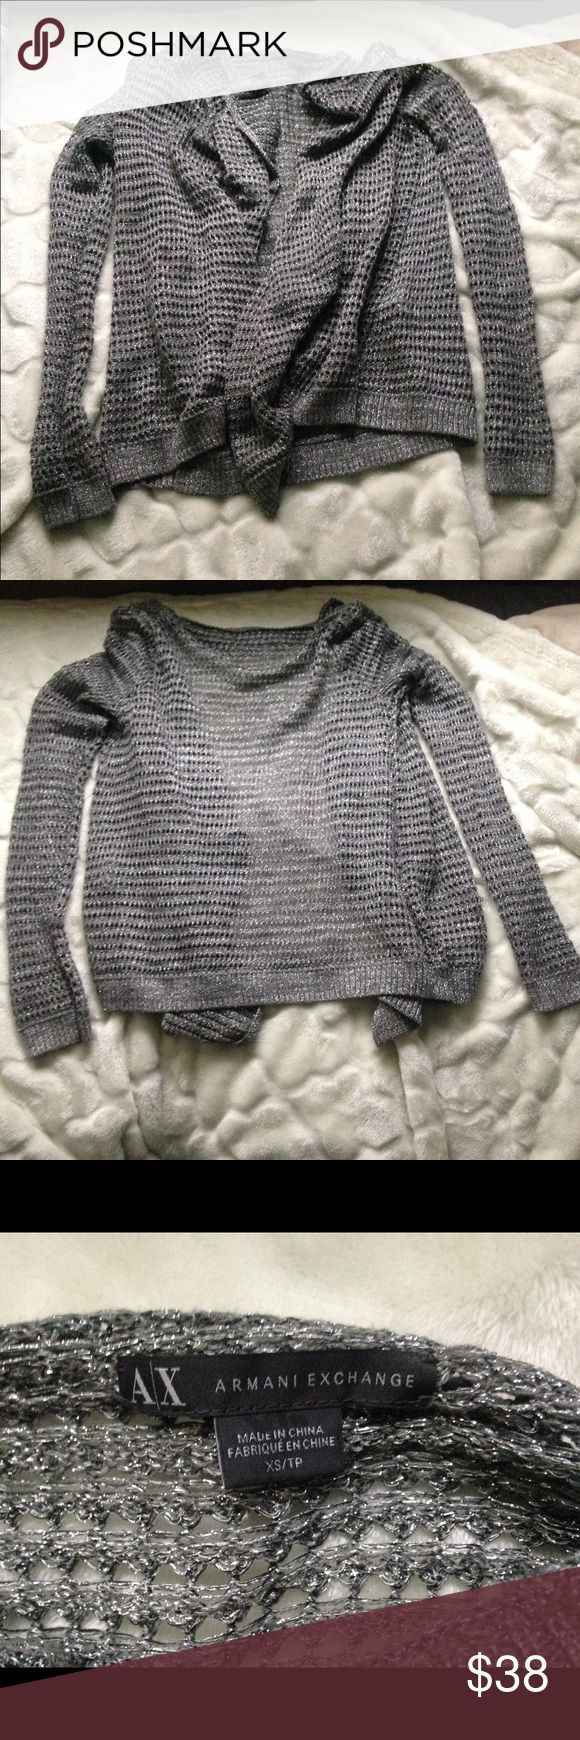 Armani Exchange Grey Wrap Knit Cardigan Size XS Armani Exchange Women's Grey Open Front Wrap Cardigan. Grey Sparkly Cotton Blend Knit, Size Extra Small. Looks Fab Paired With Spring Dresses! Excellent Condition. Armani Exchange Sweaters Cardigans